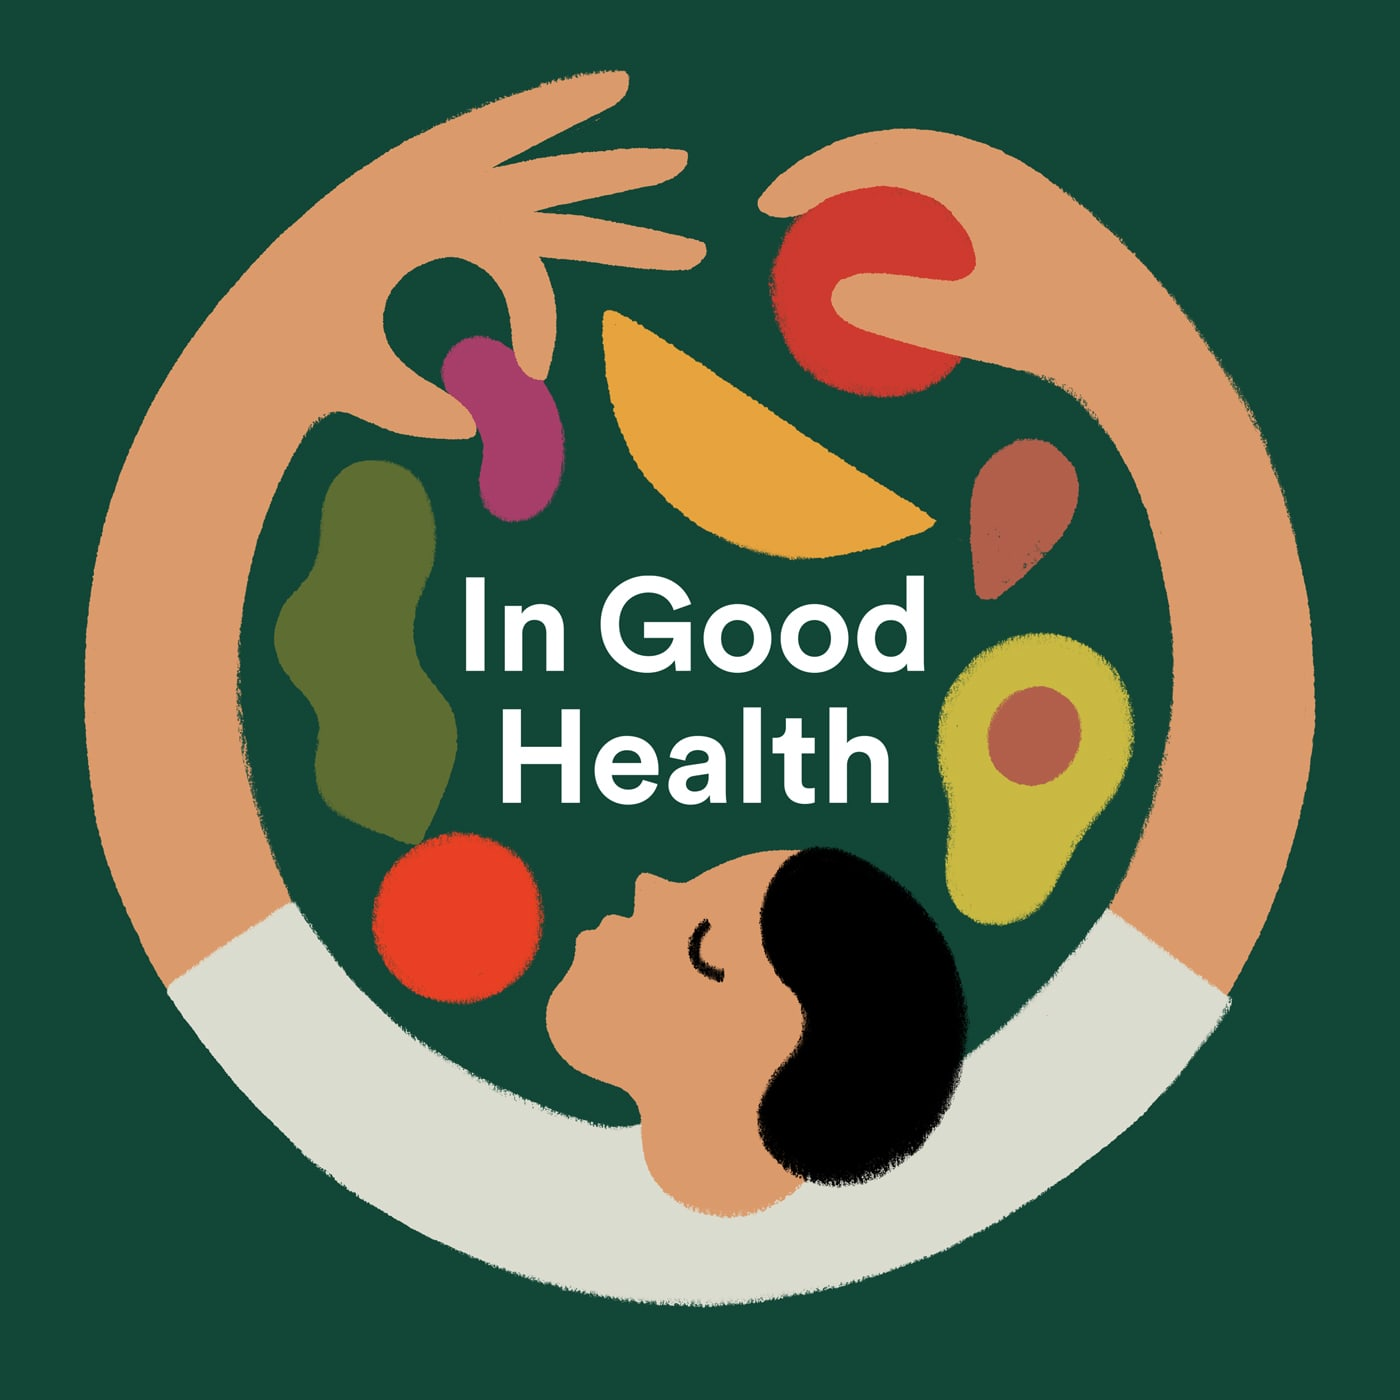 In Good Health